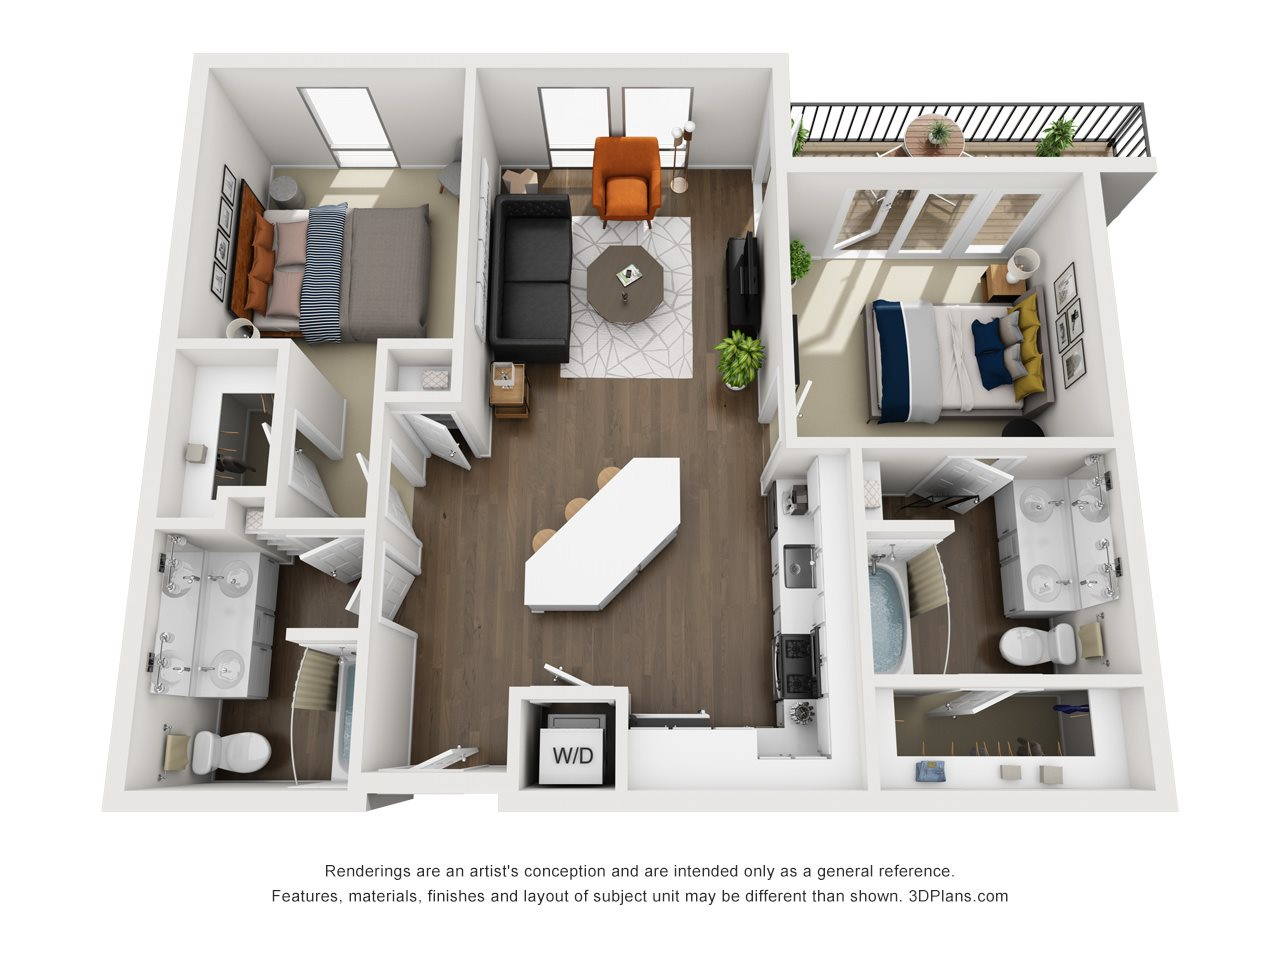 Floor plans of fremont9 in las vegas nv - 2 bedroom 2 bath apartments in las vegas ...